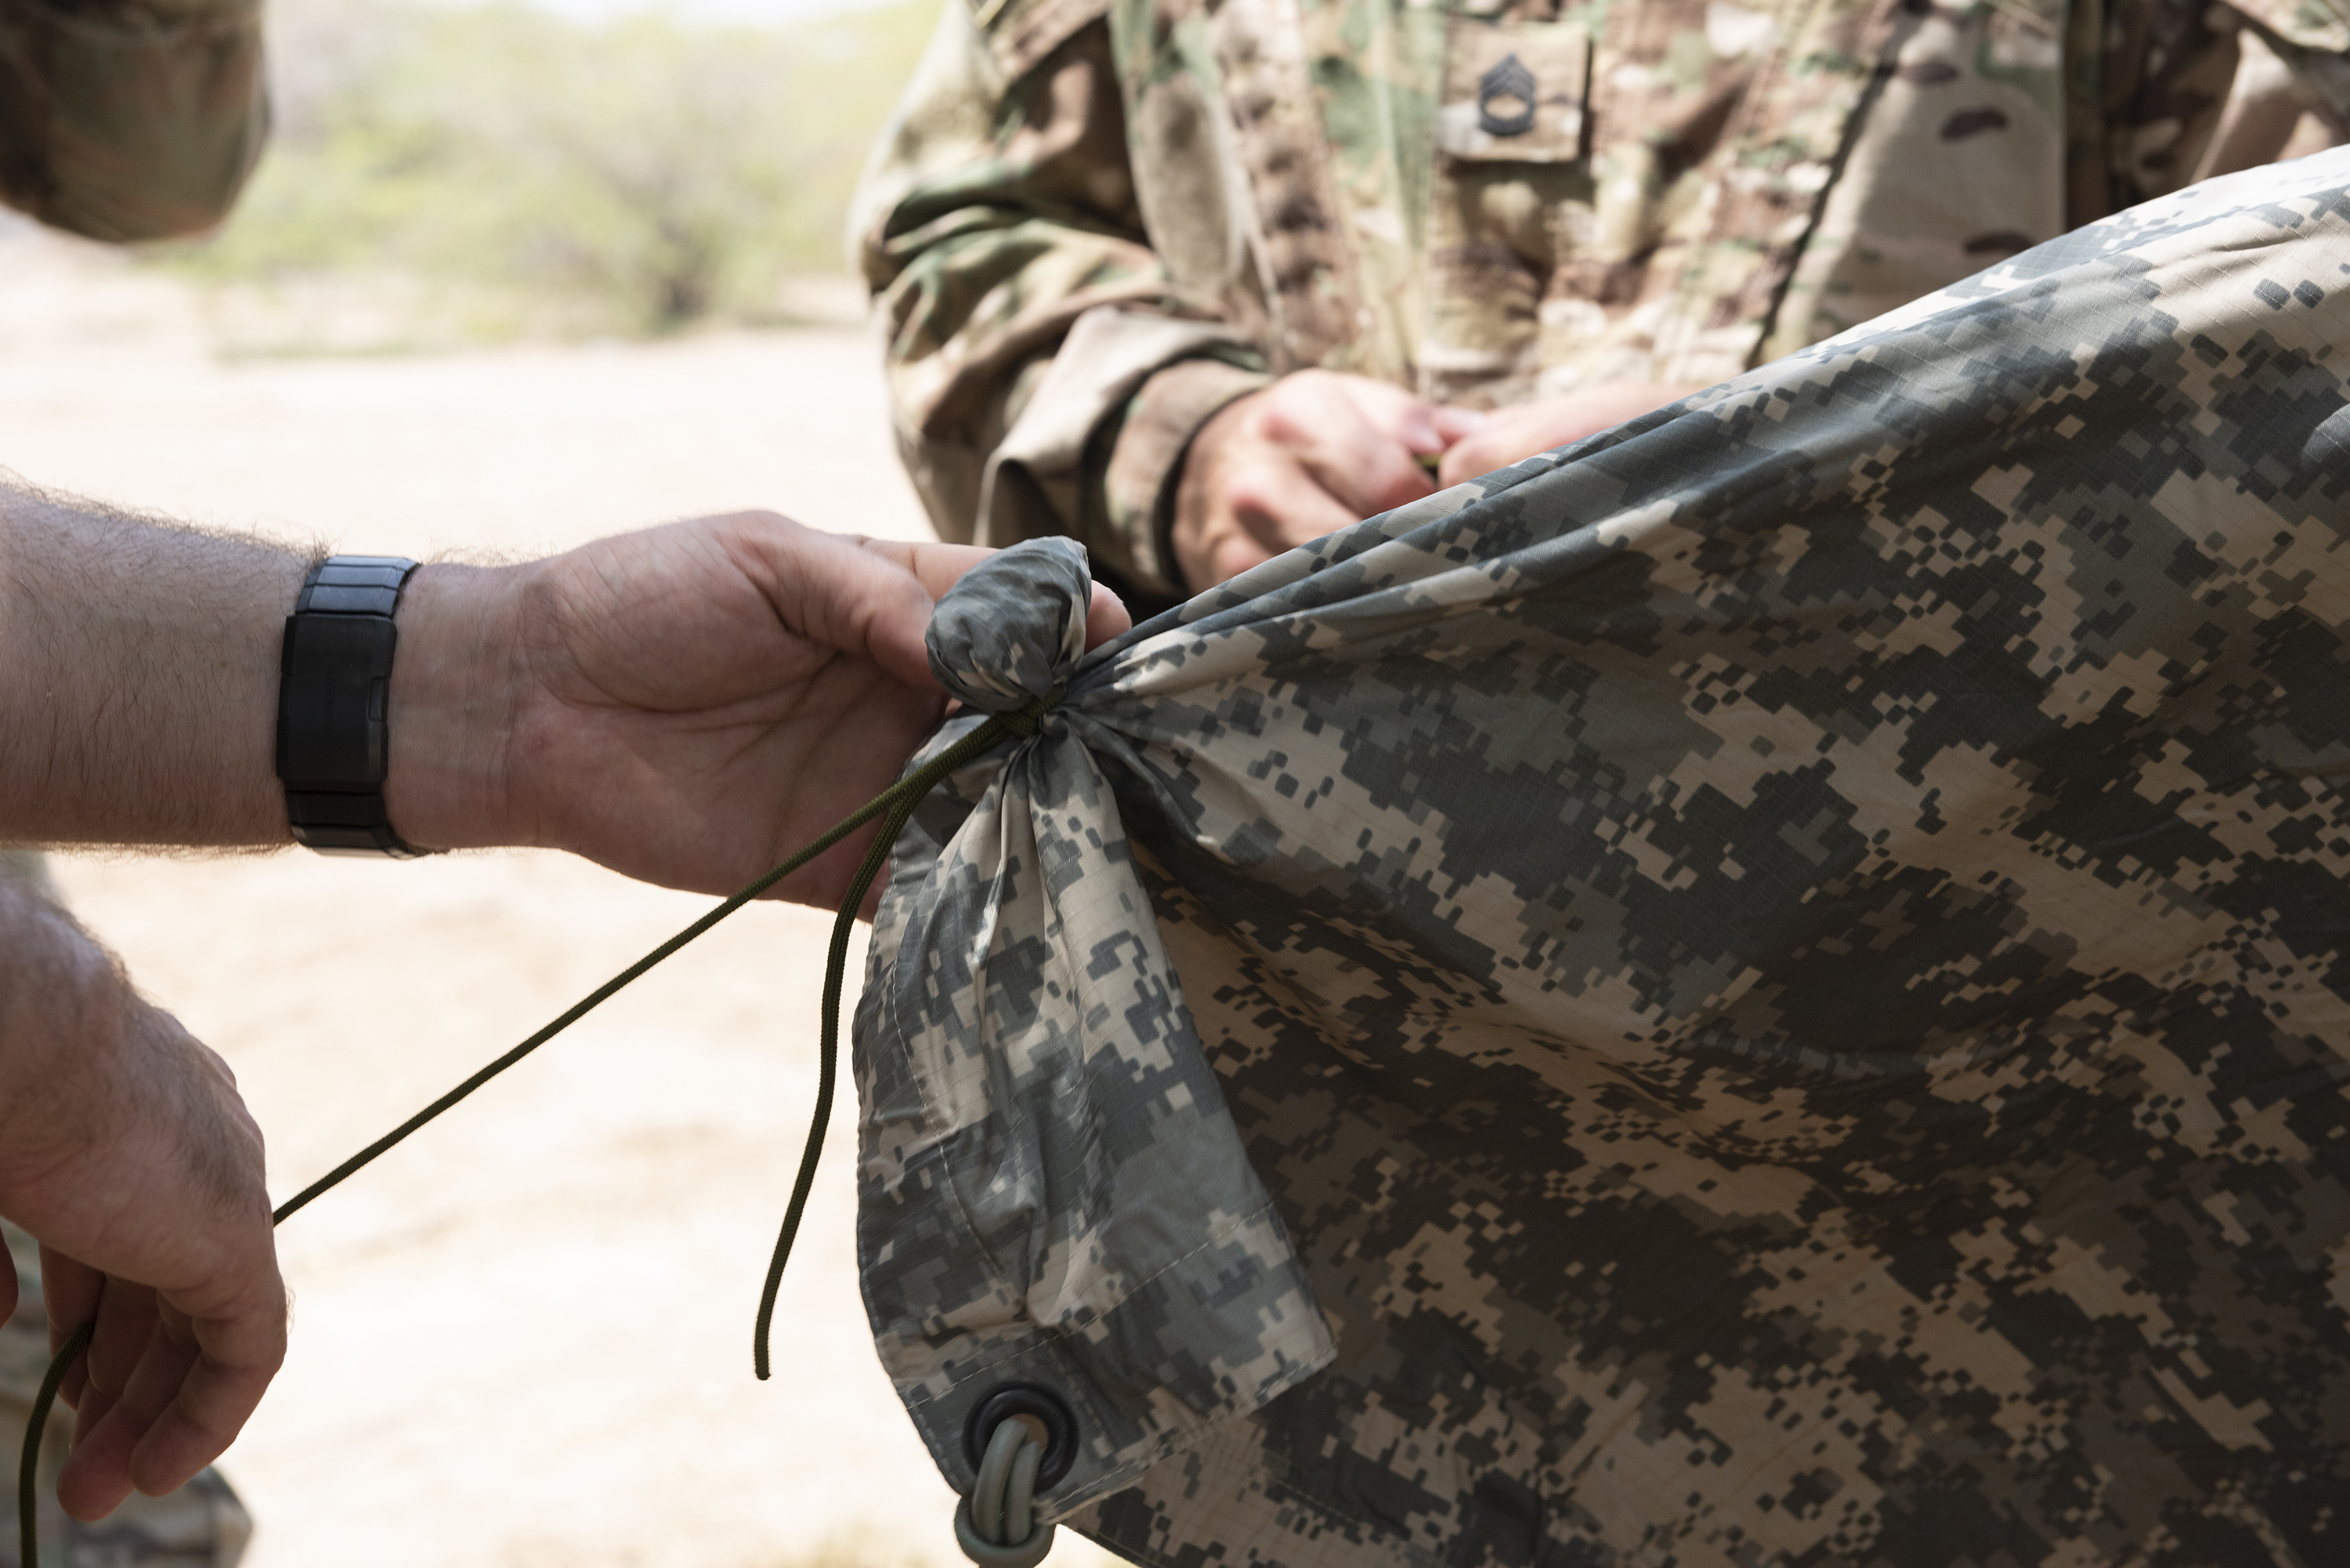 U.S. Air Force Tech. Sgt. Adam Murphy, a survival, evasion, resistance and escape specialist assigned to Combined Joint Task Force-Horn of Africa, demonstrates how to create a button on a poncho liner during survival skills training on Camp Lemonnier, Djibouti, Oct. 13, 2018. During this training, service members performed various skills such as constructing a shelter, finding alternative water sources and signaling for rescue. (U.S. Air National Guard photo by Master Sgt. Sarah Mattison)